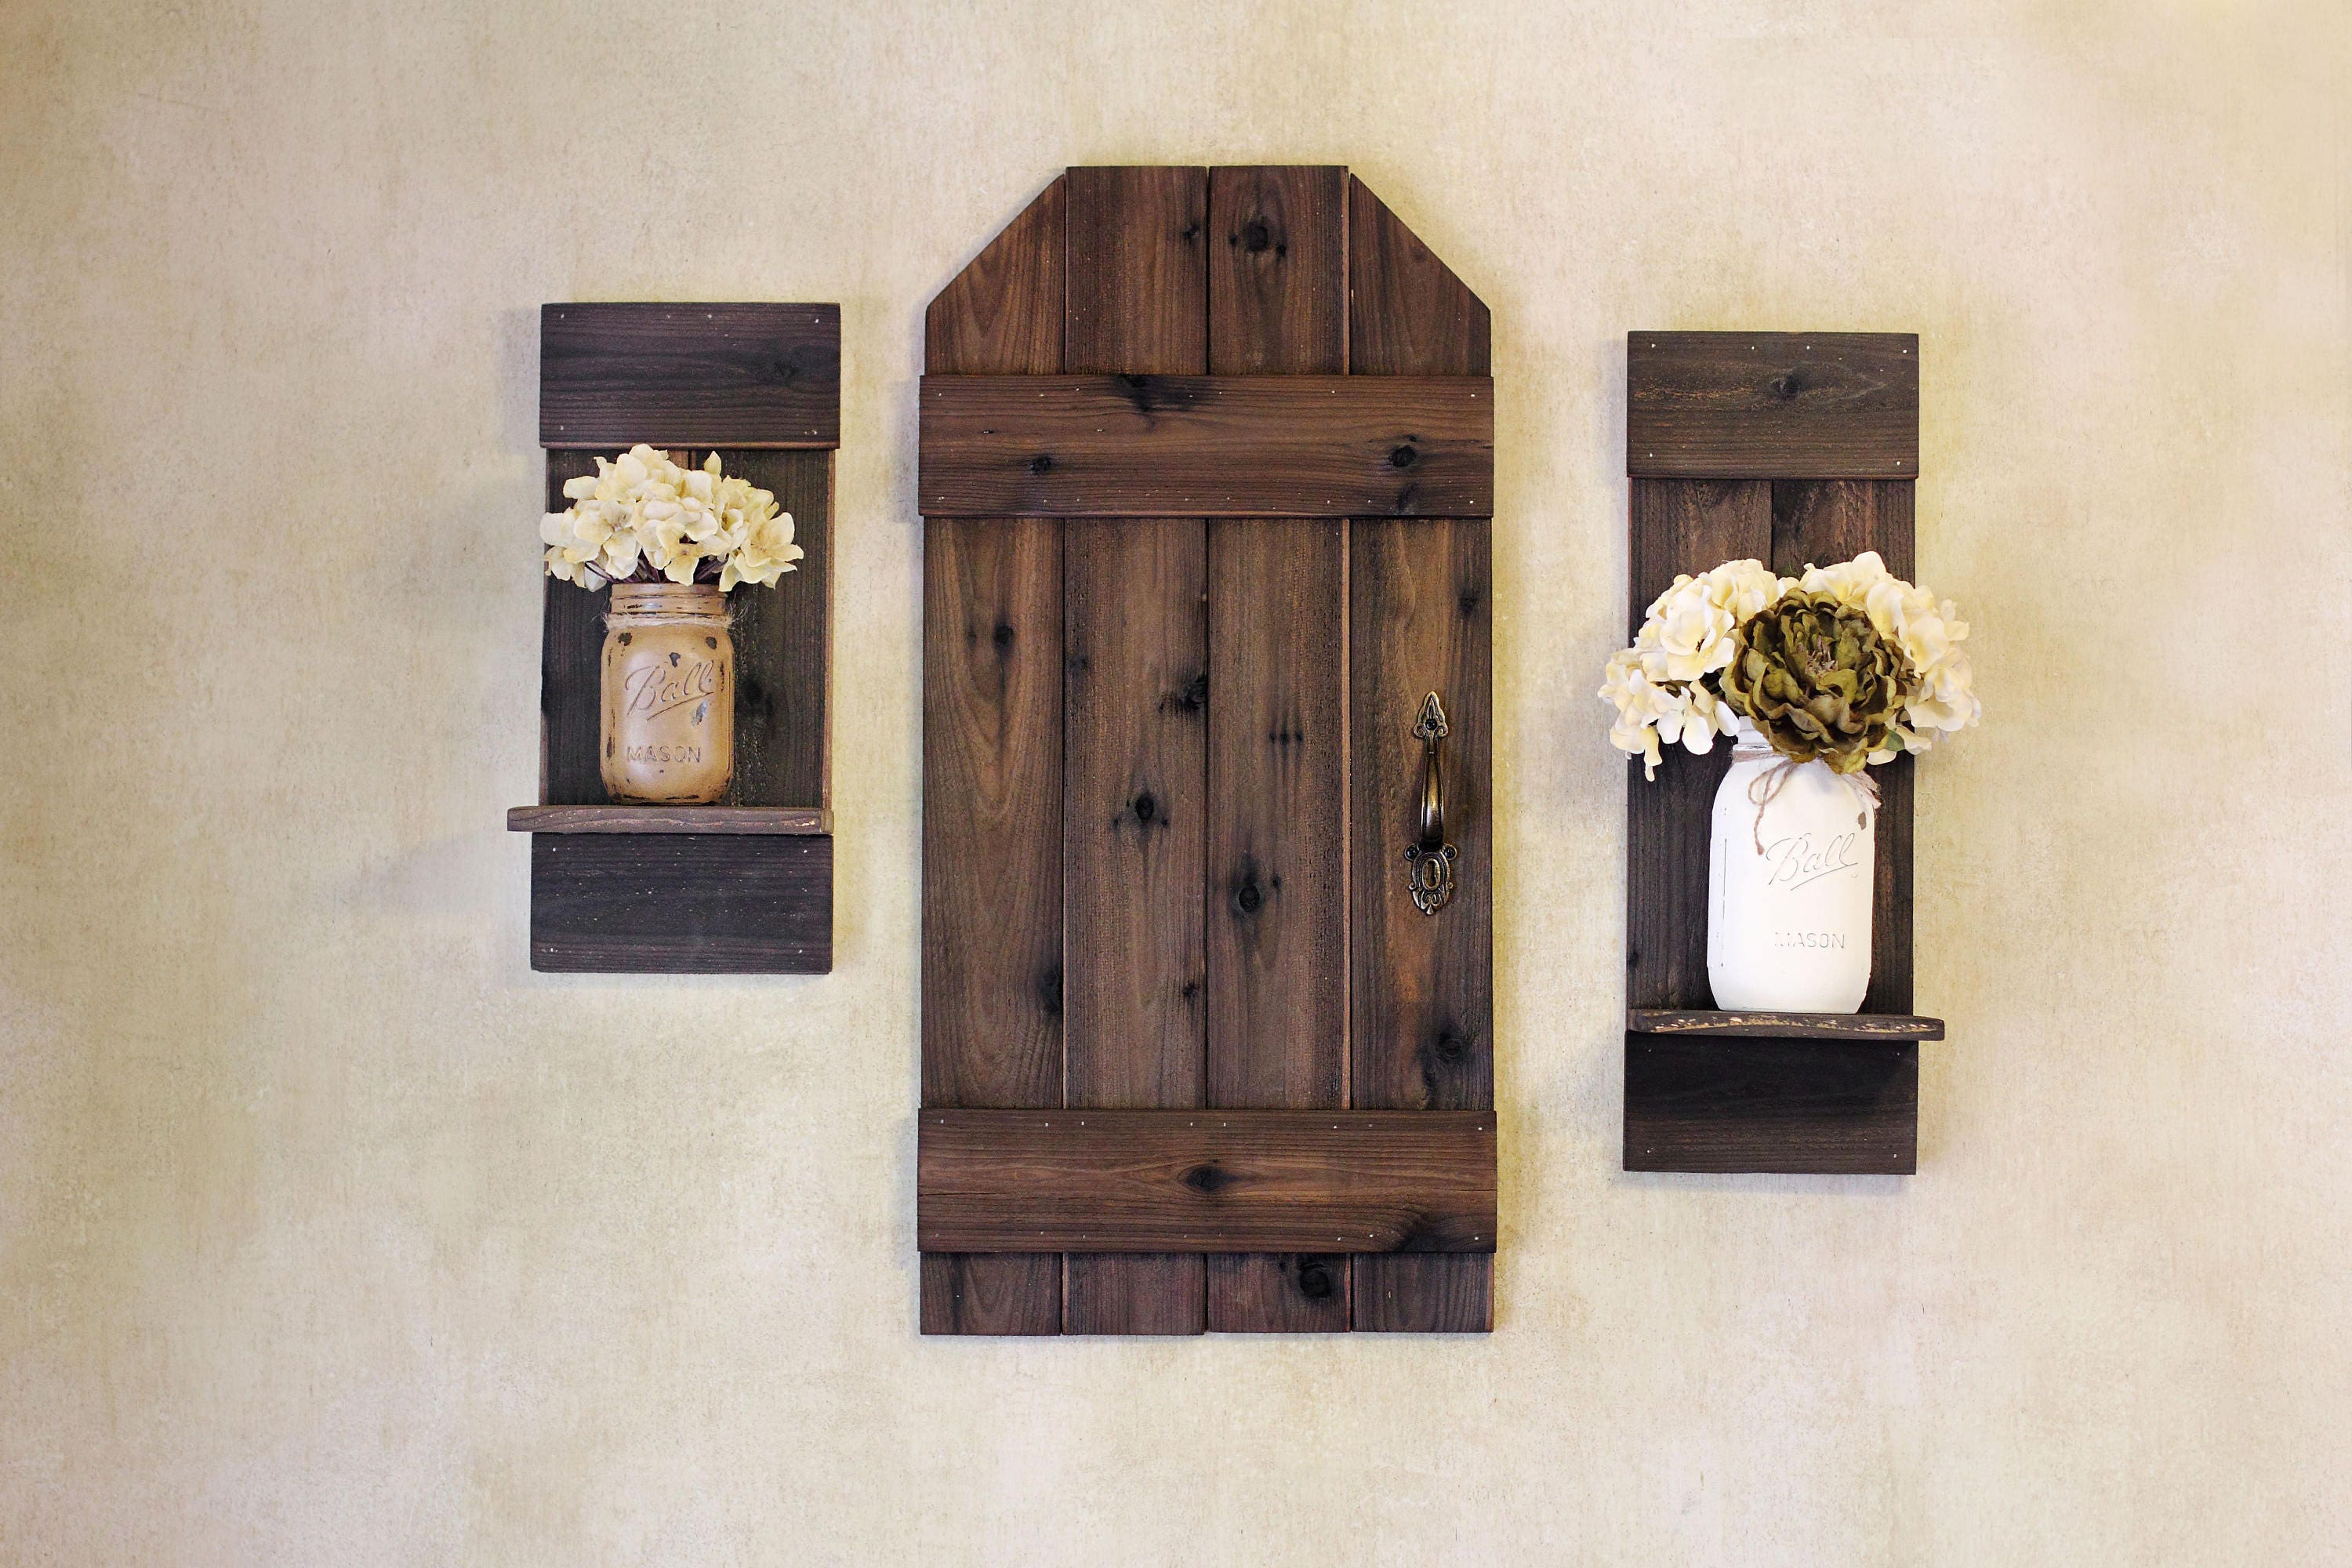 Rustic Wall Decor Mesmerizing Cotton Stem Decor Rustic Wall Decor Wall Hanging Wooden Review